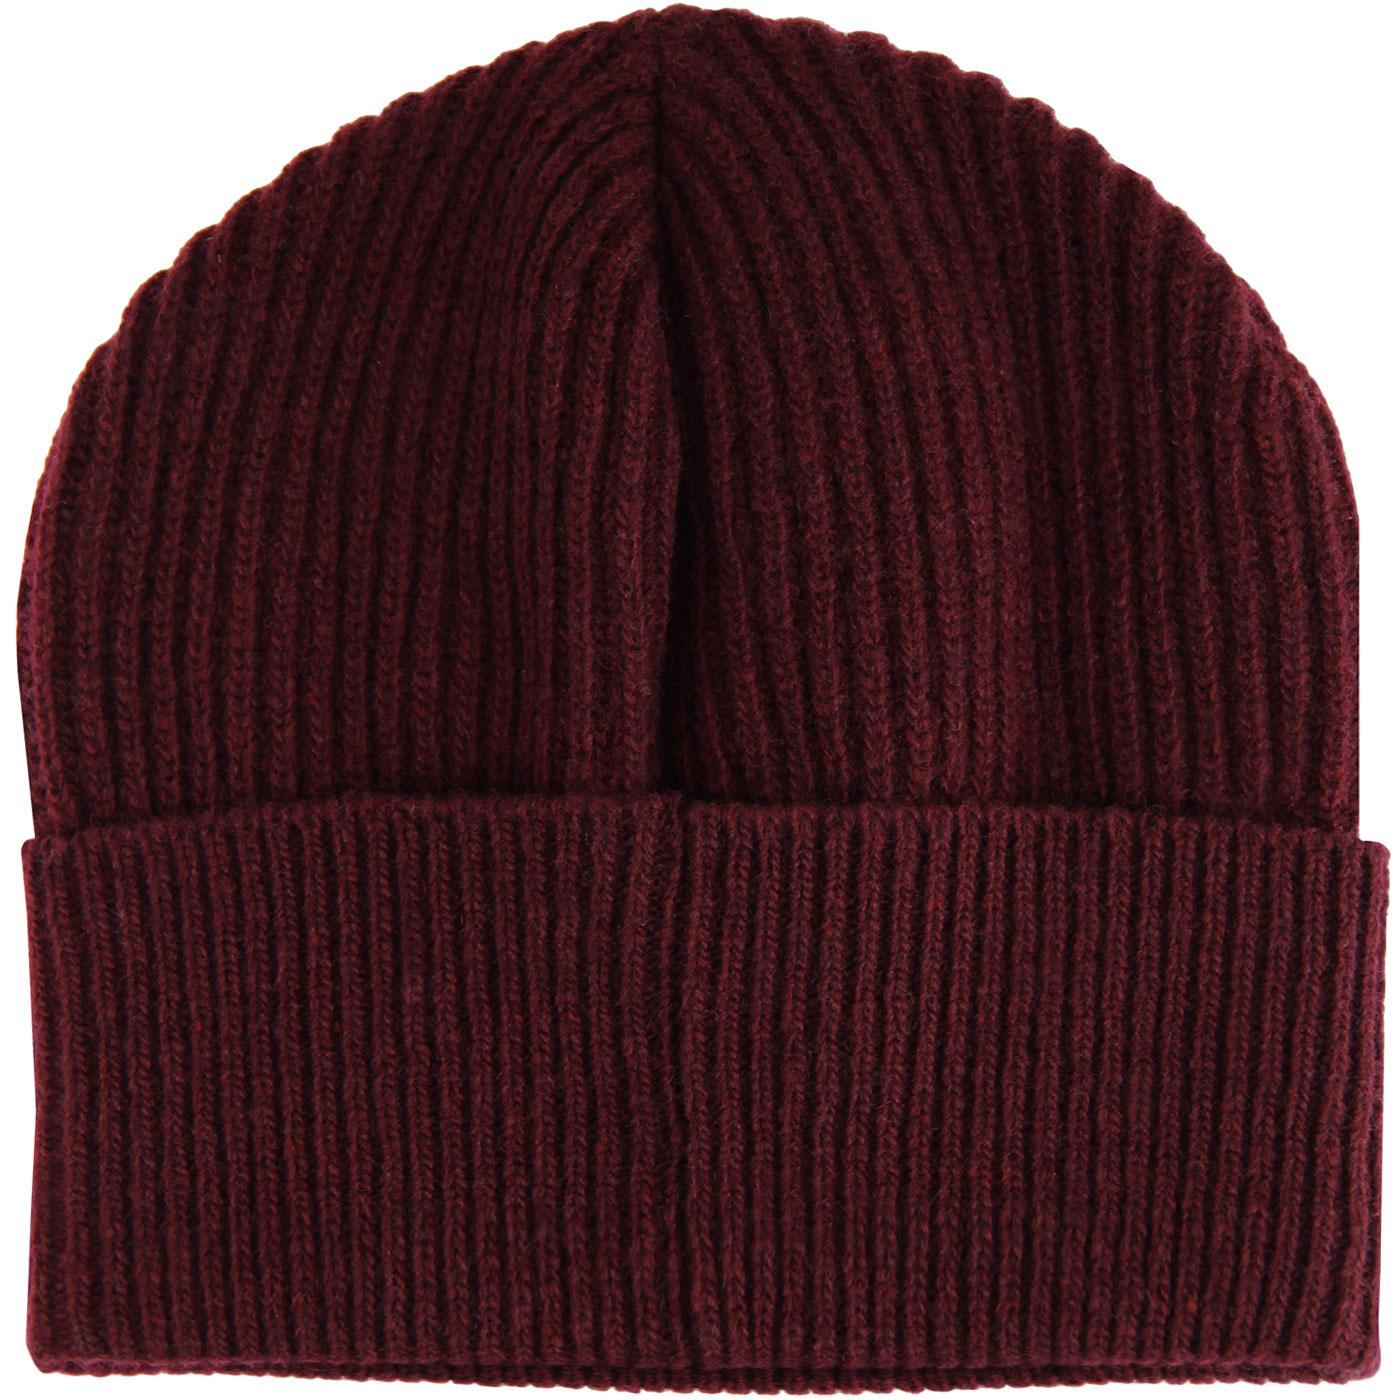 GLOVERALL Retro Knitted Lambswool Fisherman Hat